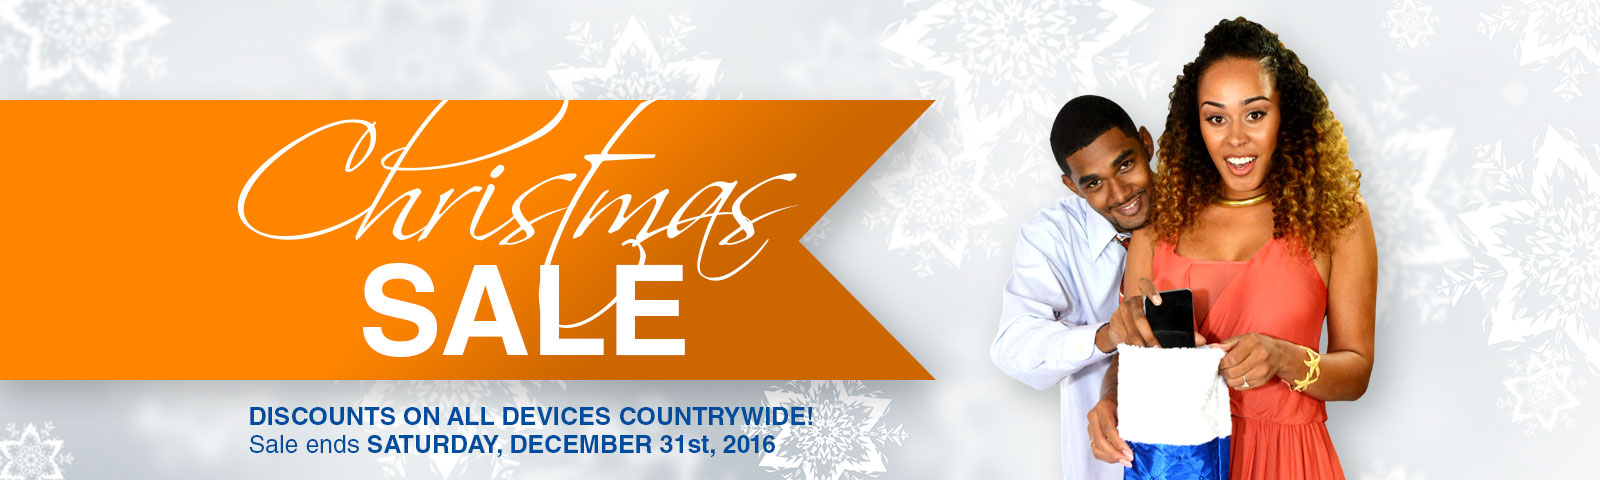 header-christmas-sale